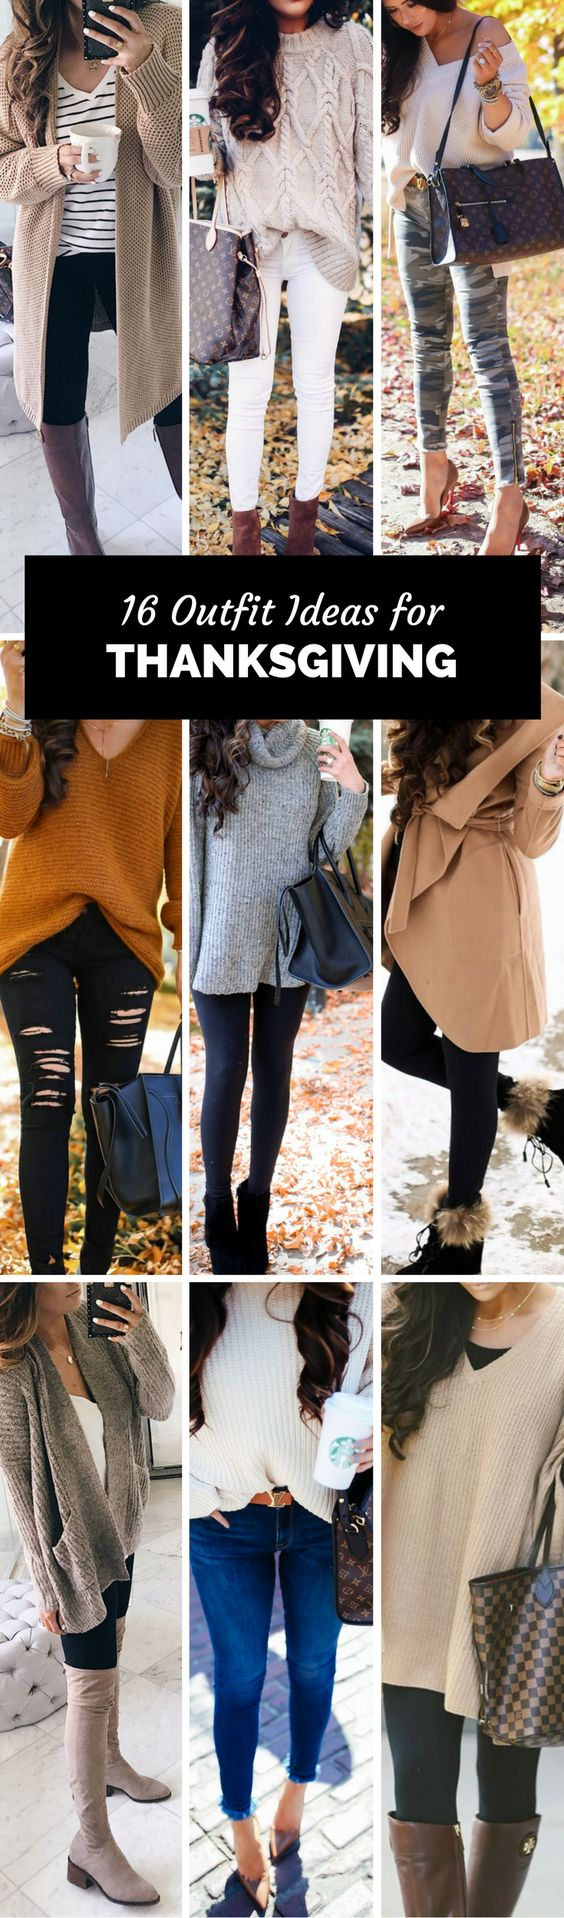 My favorite looks for Thanksgiving. The Sweetest Thing, Emily Gemma. Fashion Blogger, Fashion Trends, Fashion Outfits, Casual style, camel coat, grey sweater, distressed jeans, louis vuitton handbag, suede boots, striped tee. #fashionblogger #thanksgivingoutfits #falloutfits #winteroutfits #style #camelcoat